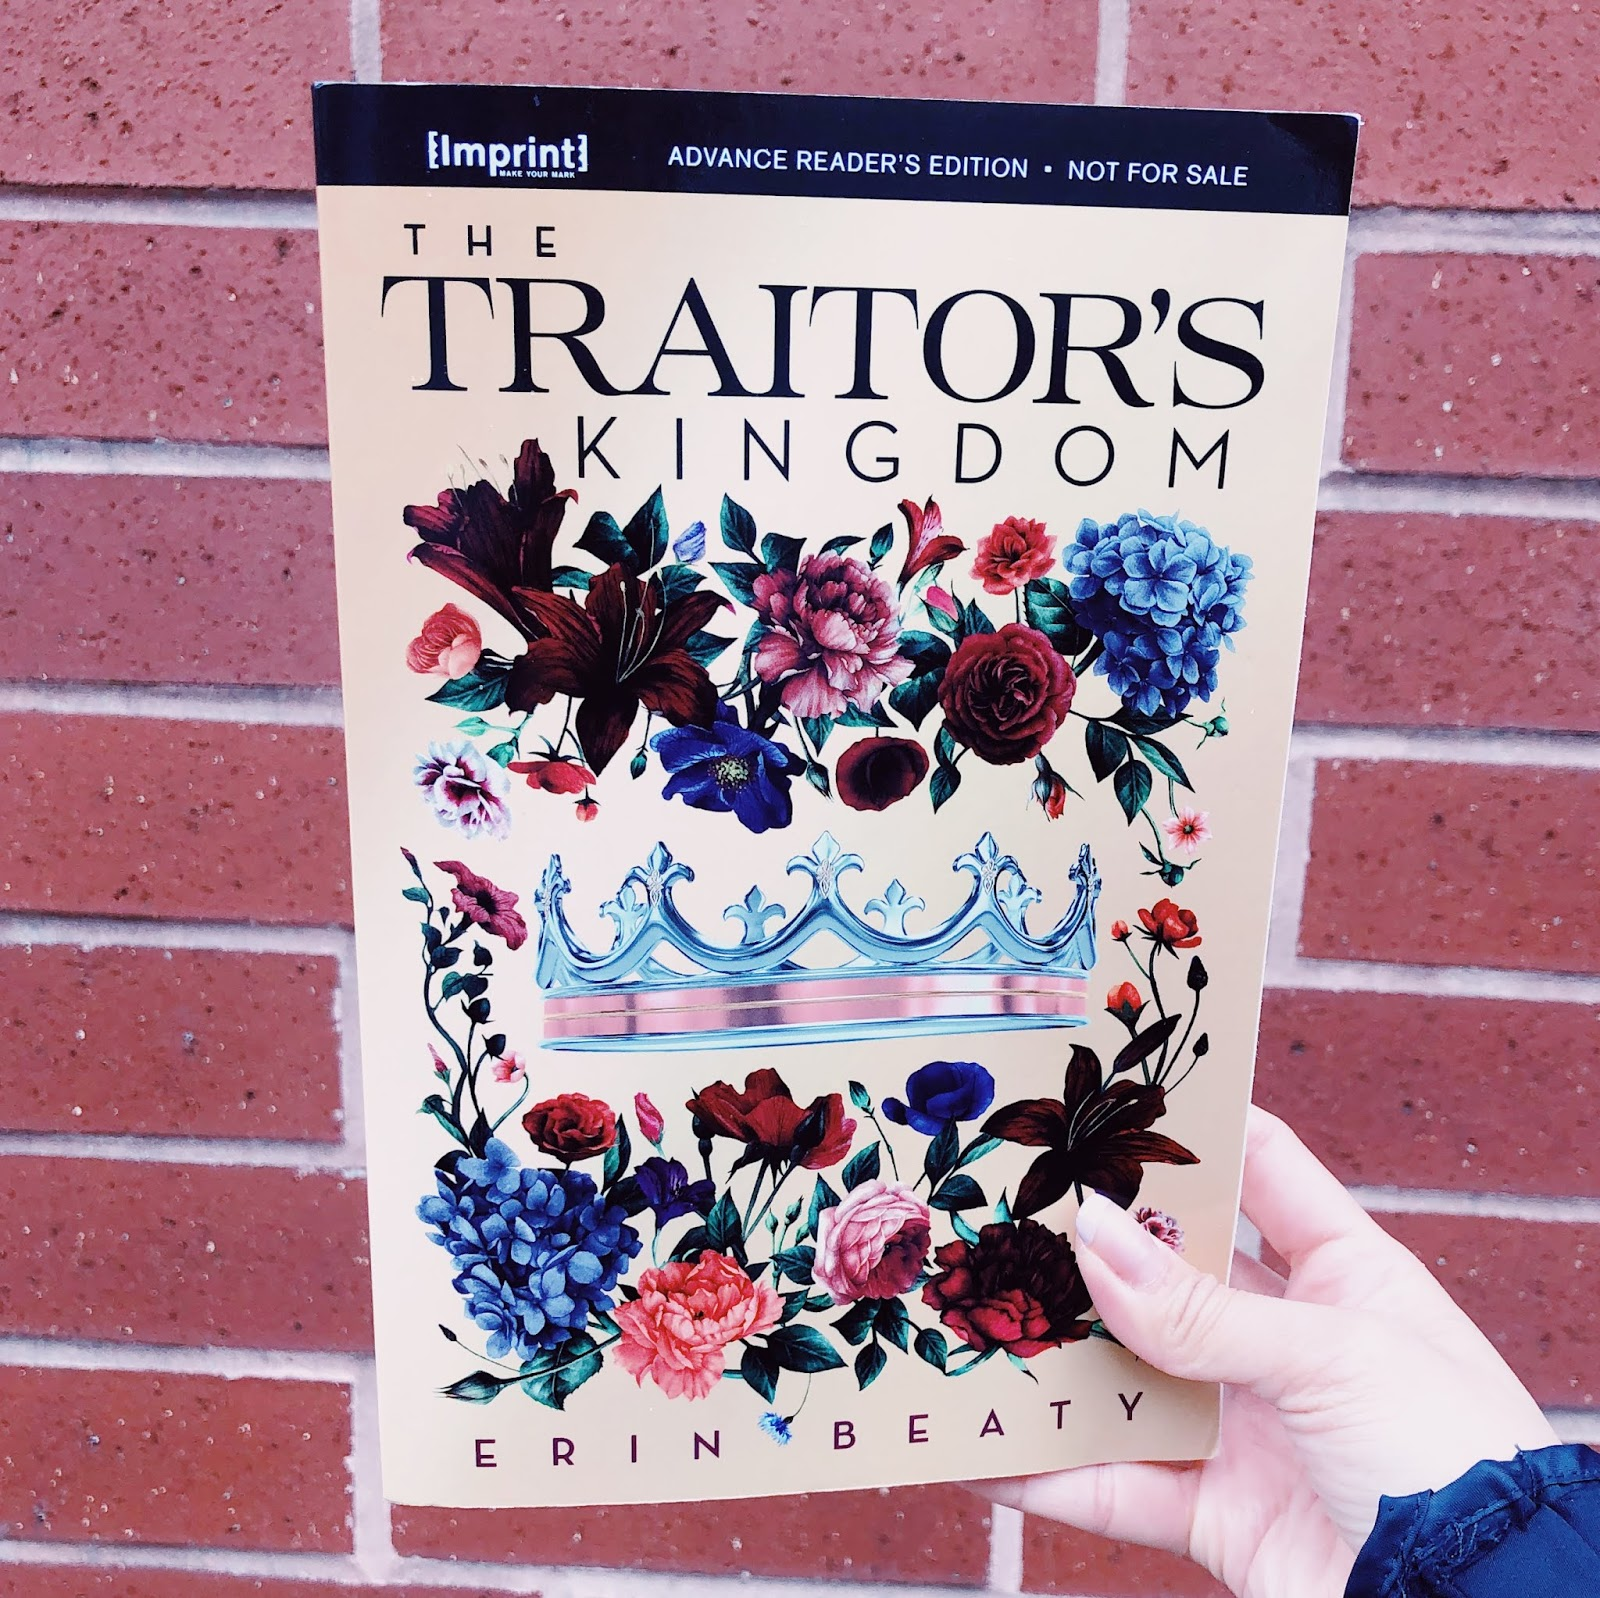 Mini-reviews: The Traitor's Kingdom + Past Perfect Life